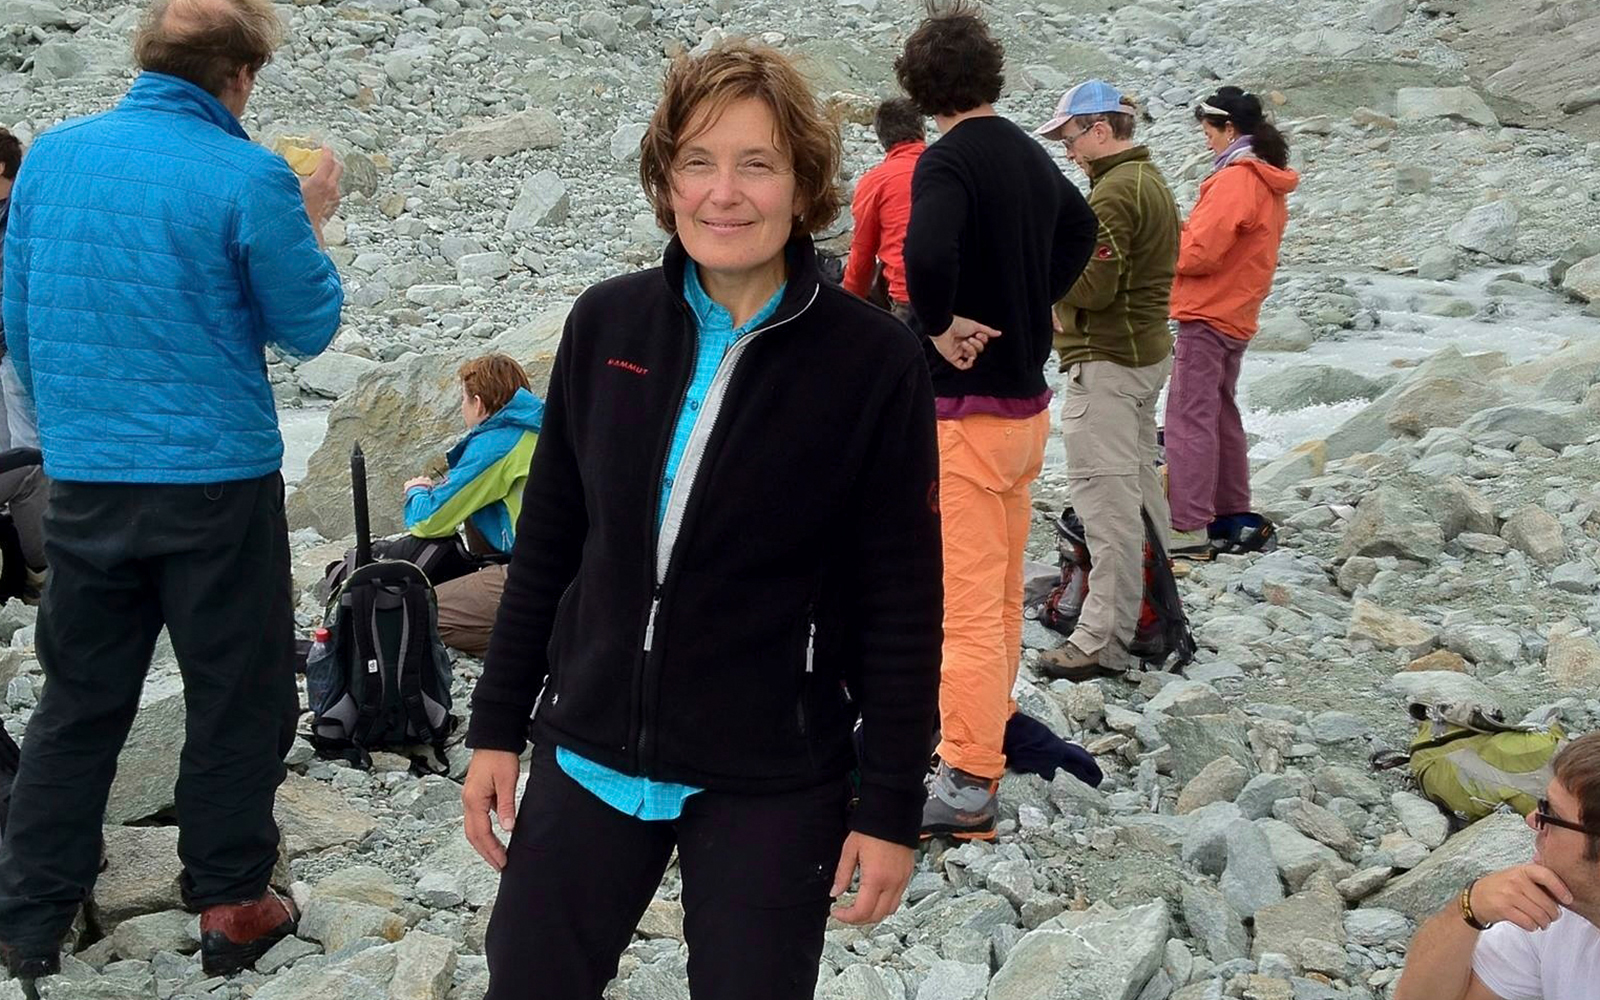 Police to charge suspect in US scientist's slaying in Crete